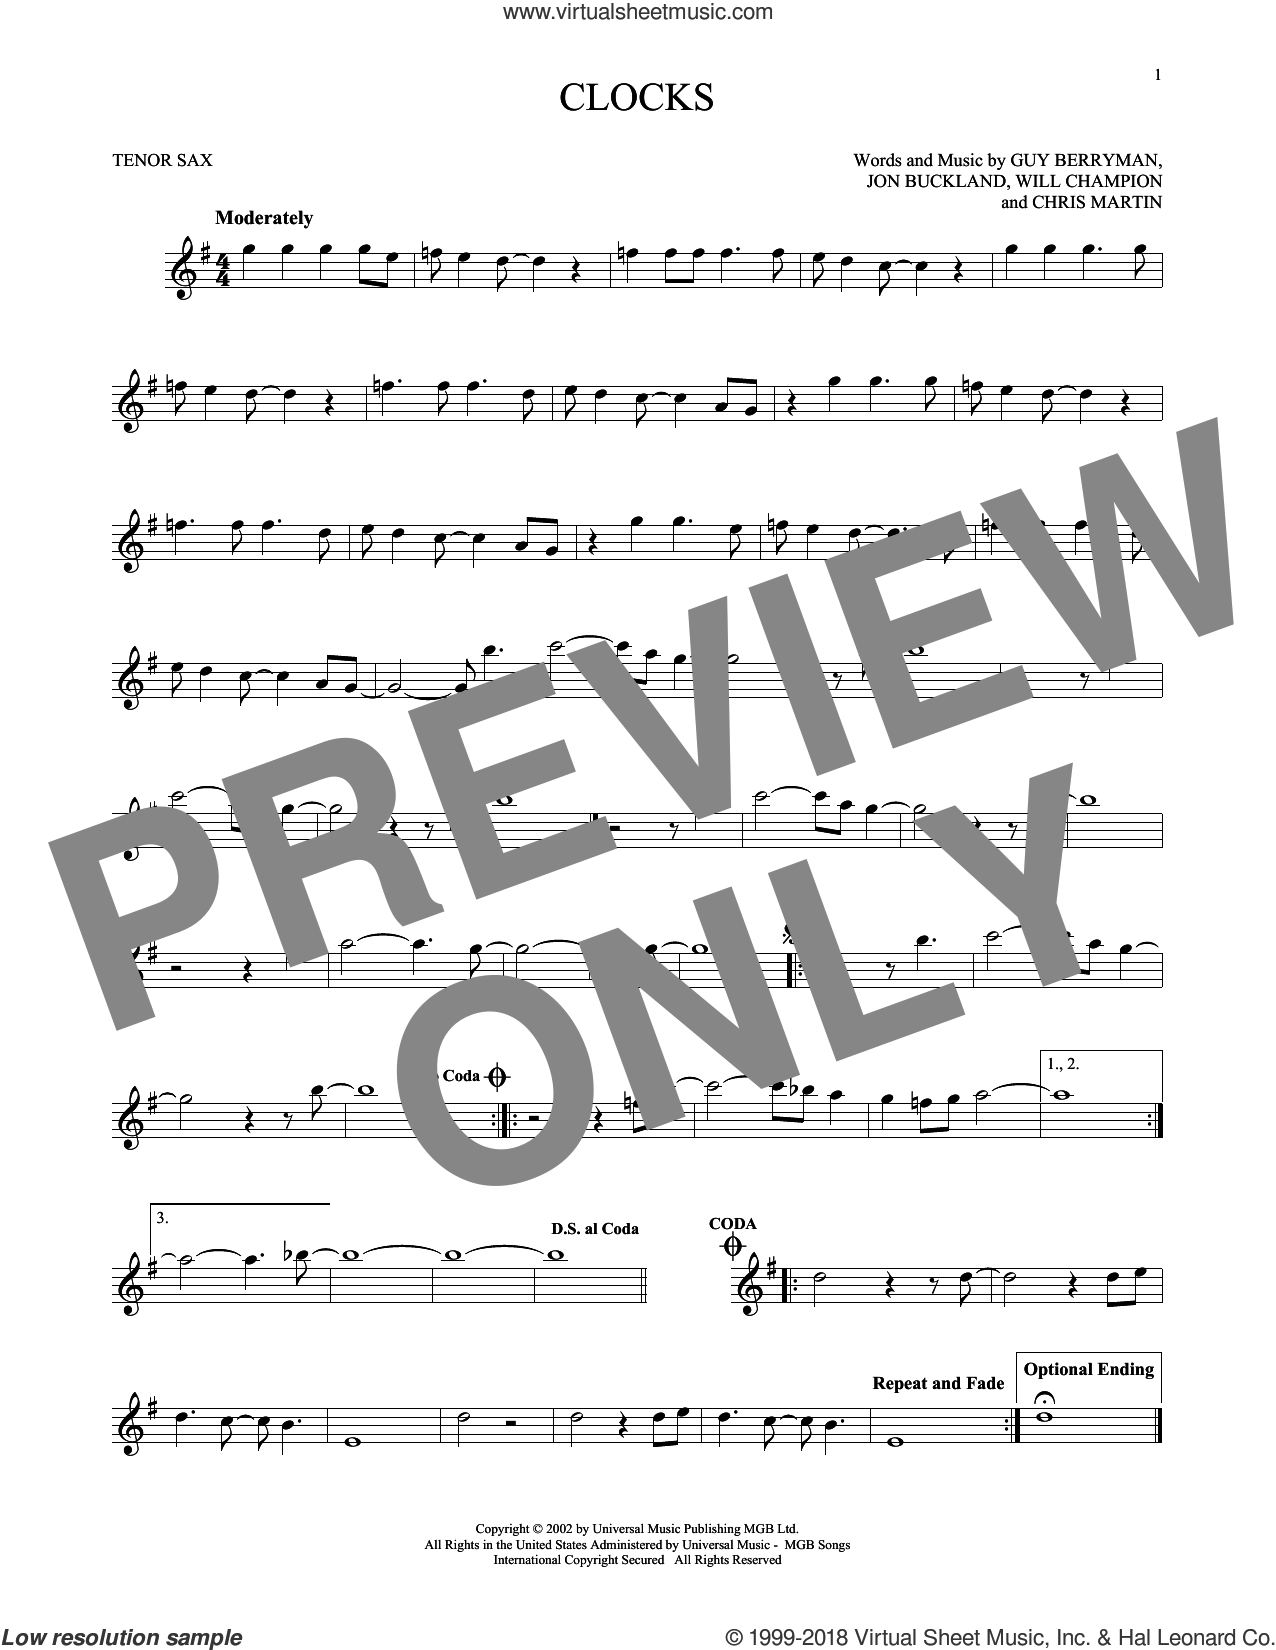 Clocks sheet music for tenor saxophone solo by Chris Martin, Coldplay, Guy Berryman, Jon Buckland and Will Champion, intermediate skill level